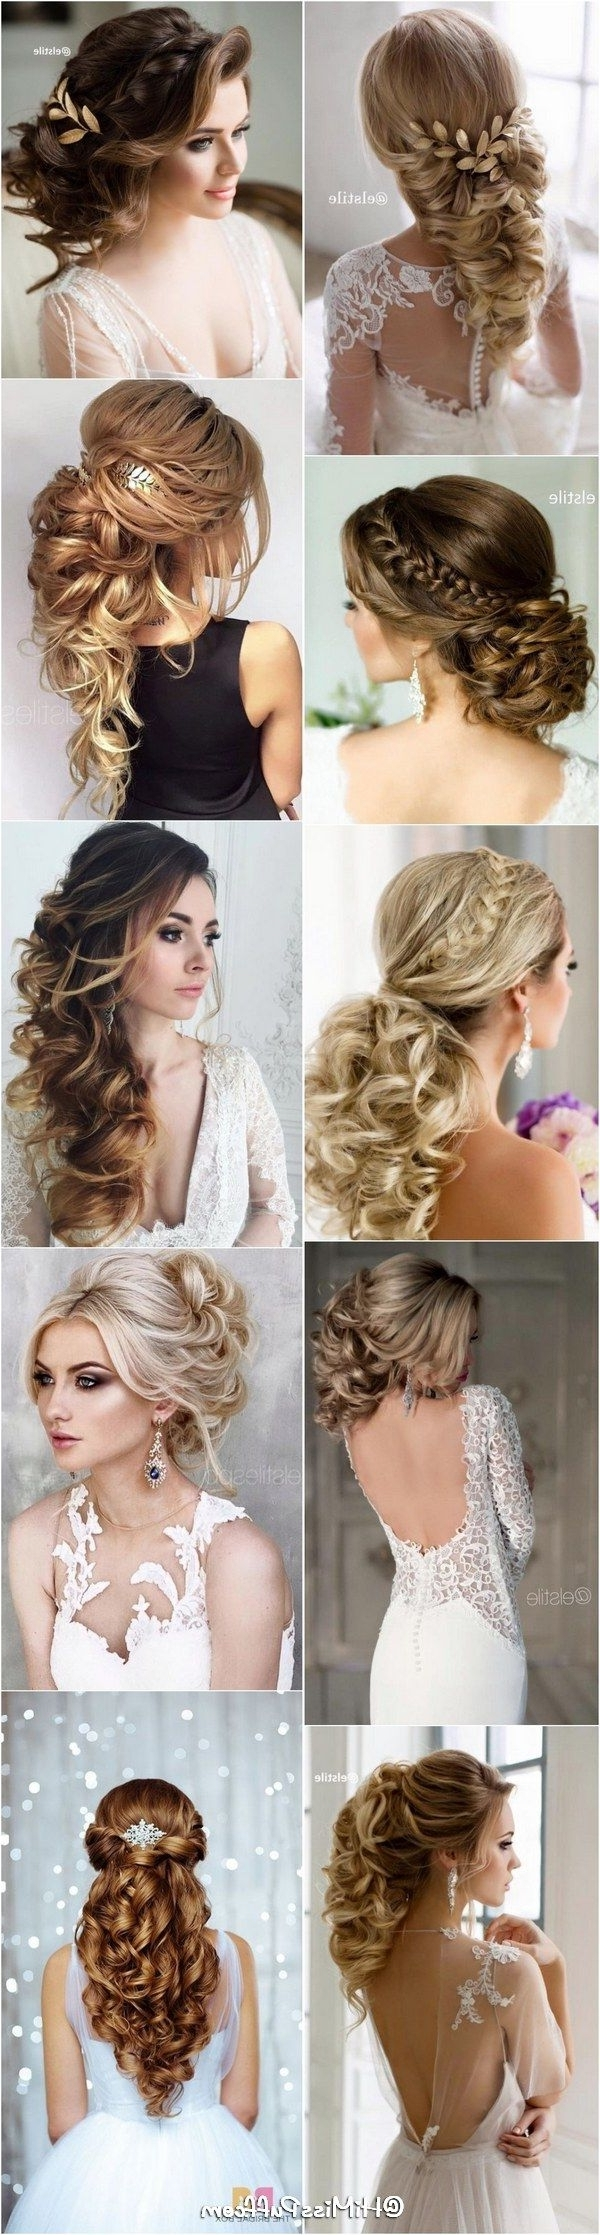 Trendy Wedding Hairstyles For Long Hair And Fringe Inside Bridal Wedding Hairstyles For Long Hair That Will Inspire / Http (View 14 of 15)